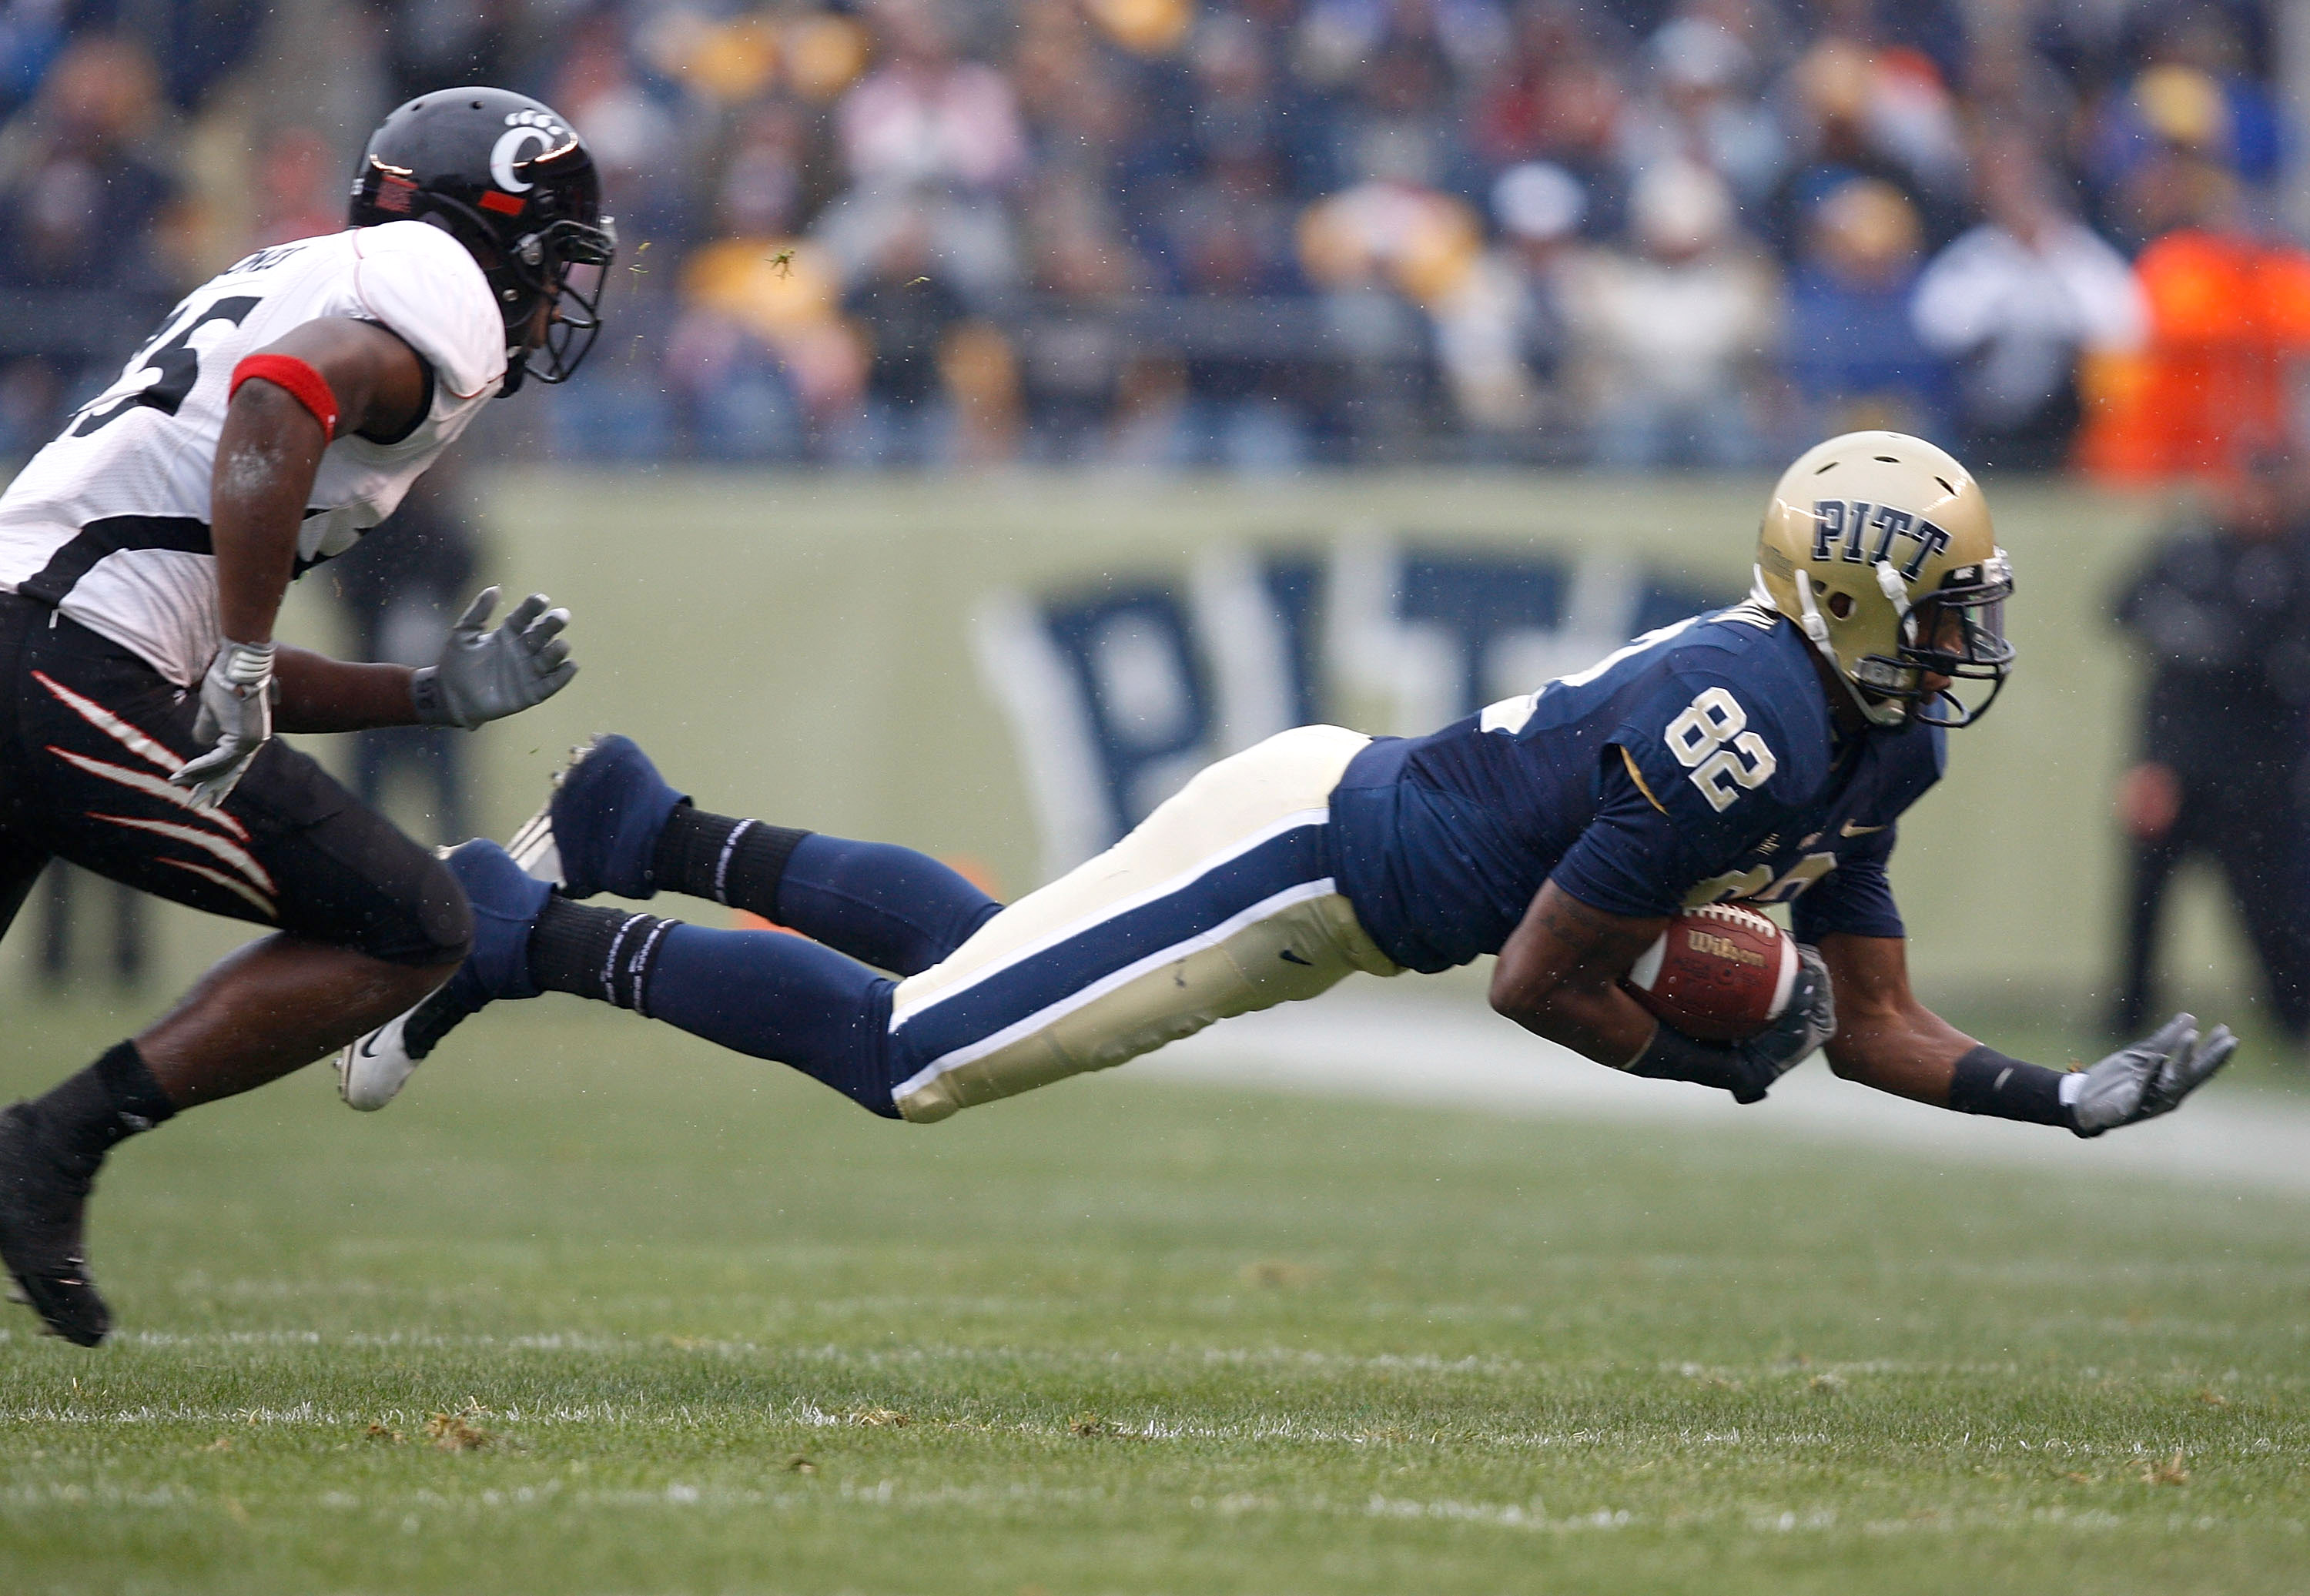 PITTSBURGH - DECEMBER 05: Jonathan Baldwin #82 of the University of Pittsburgh Panthers catches a pass against the Cincinnati Bearcats on December 5, 2009 at Heinz Field in Pittsburgh, Pennsylvania.(Photo by Jared Wickerham/Getty Images)